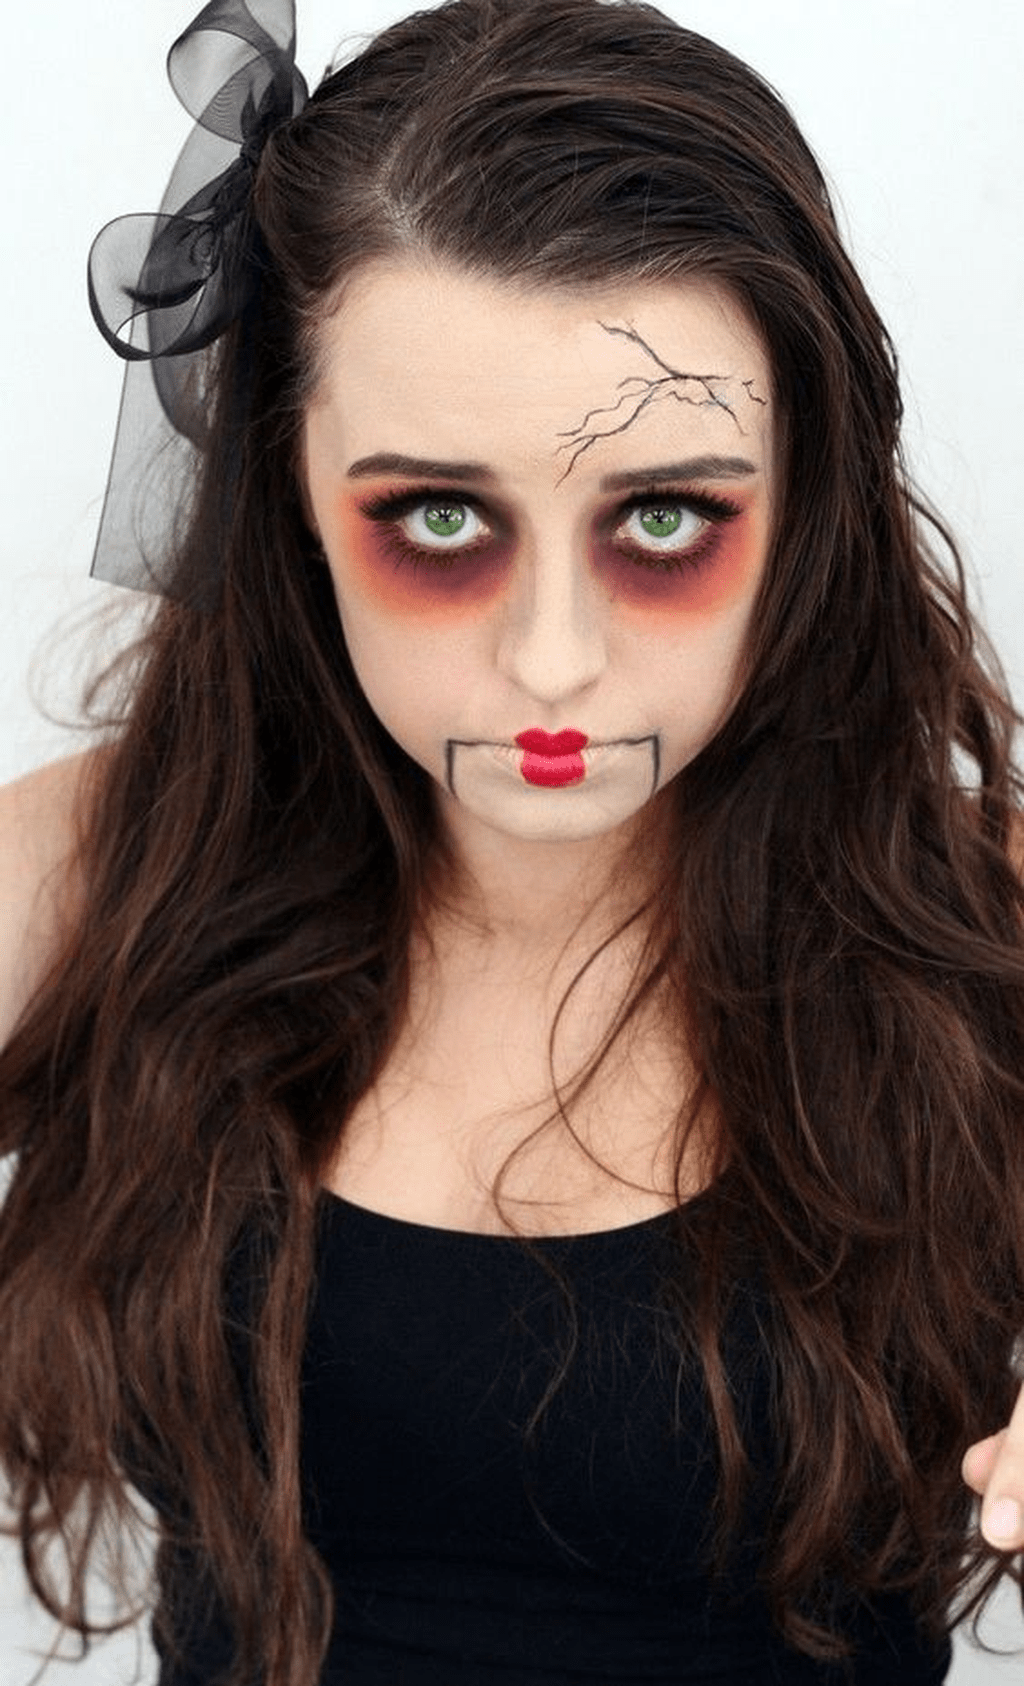 40 Amazing Halloween Makeup Ideas For Women Which Will